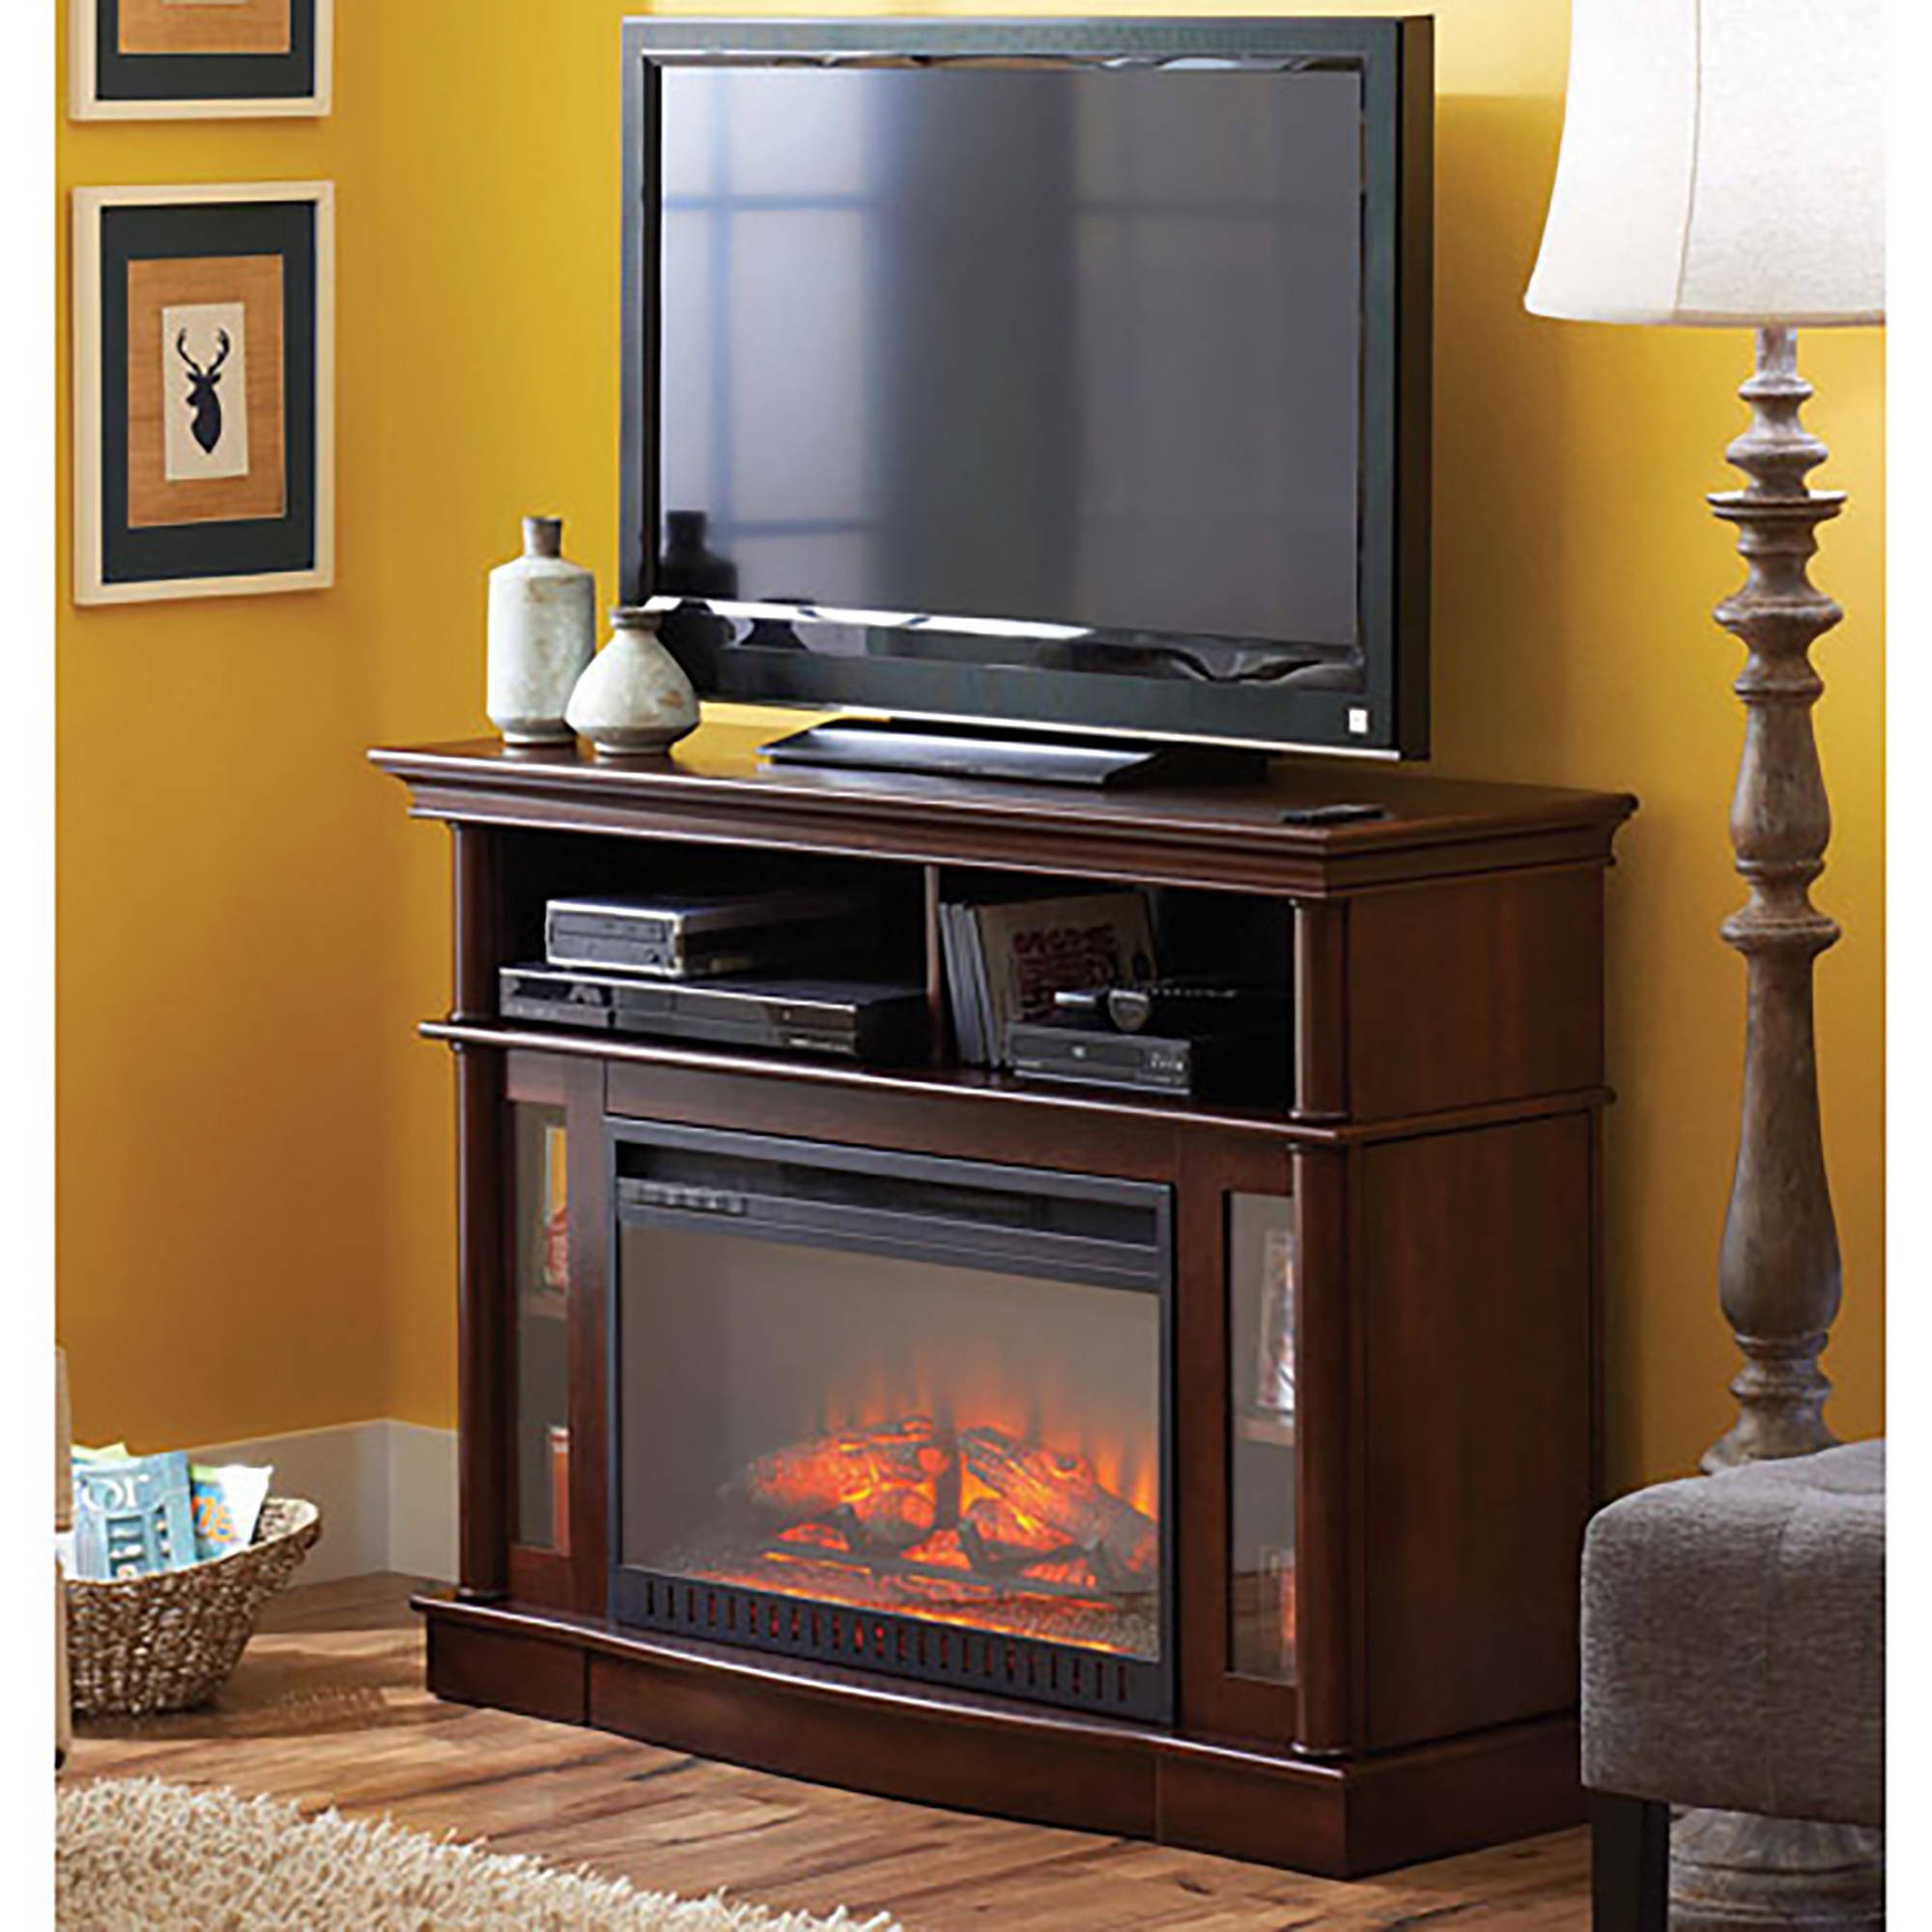 "Better Homes and Gardens Ashwood Road Media Electric Fireplace for TVs up to 45"", Brown"